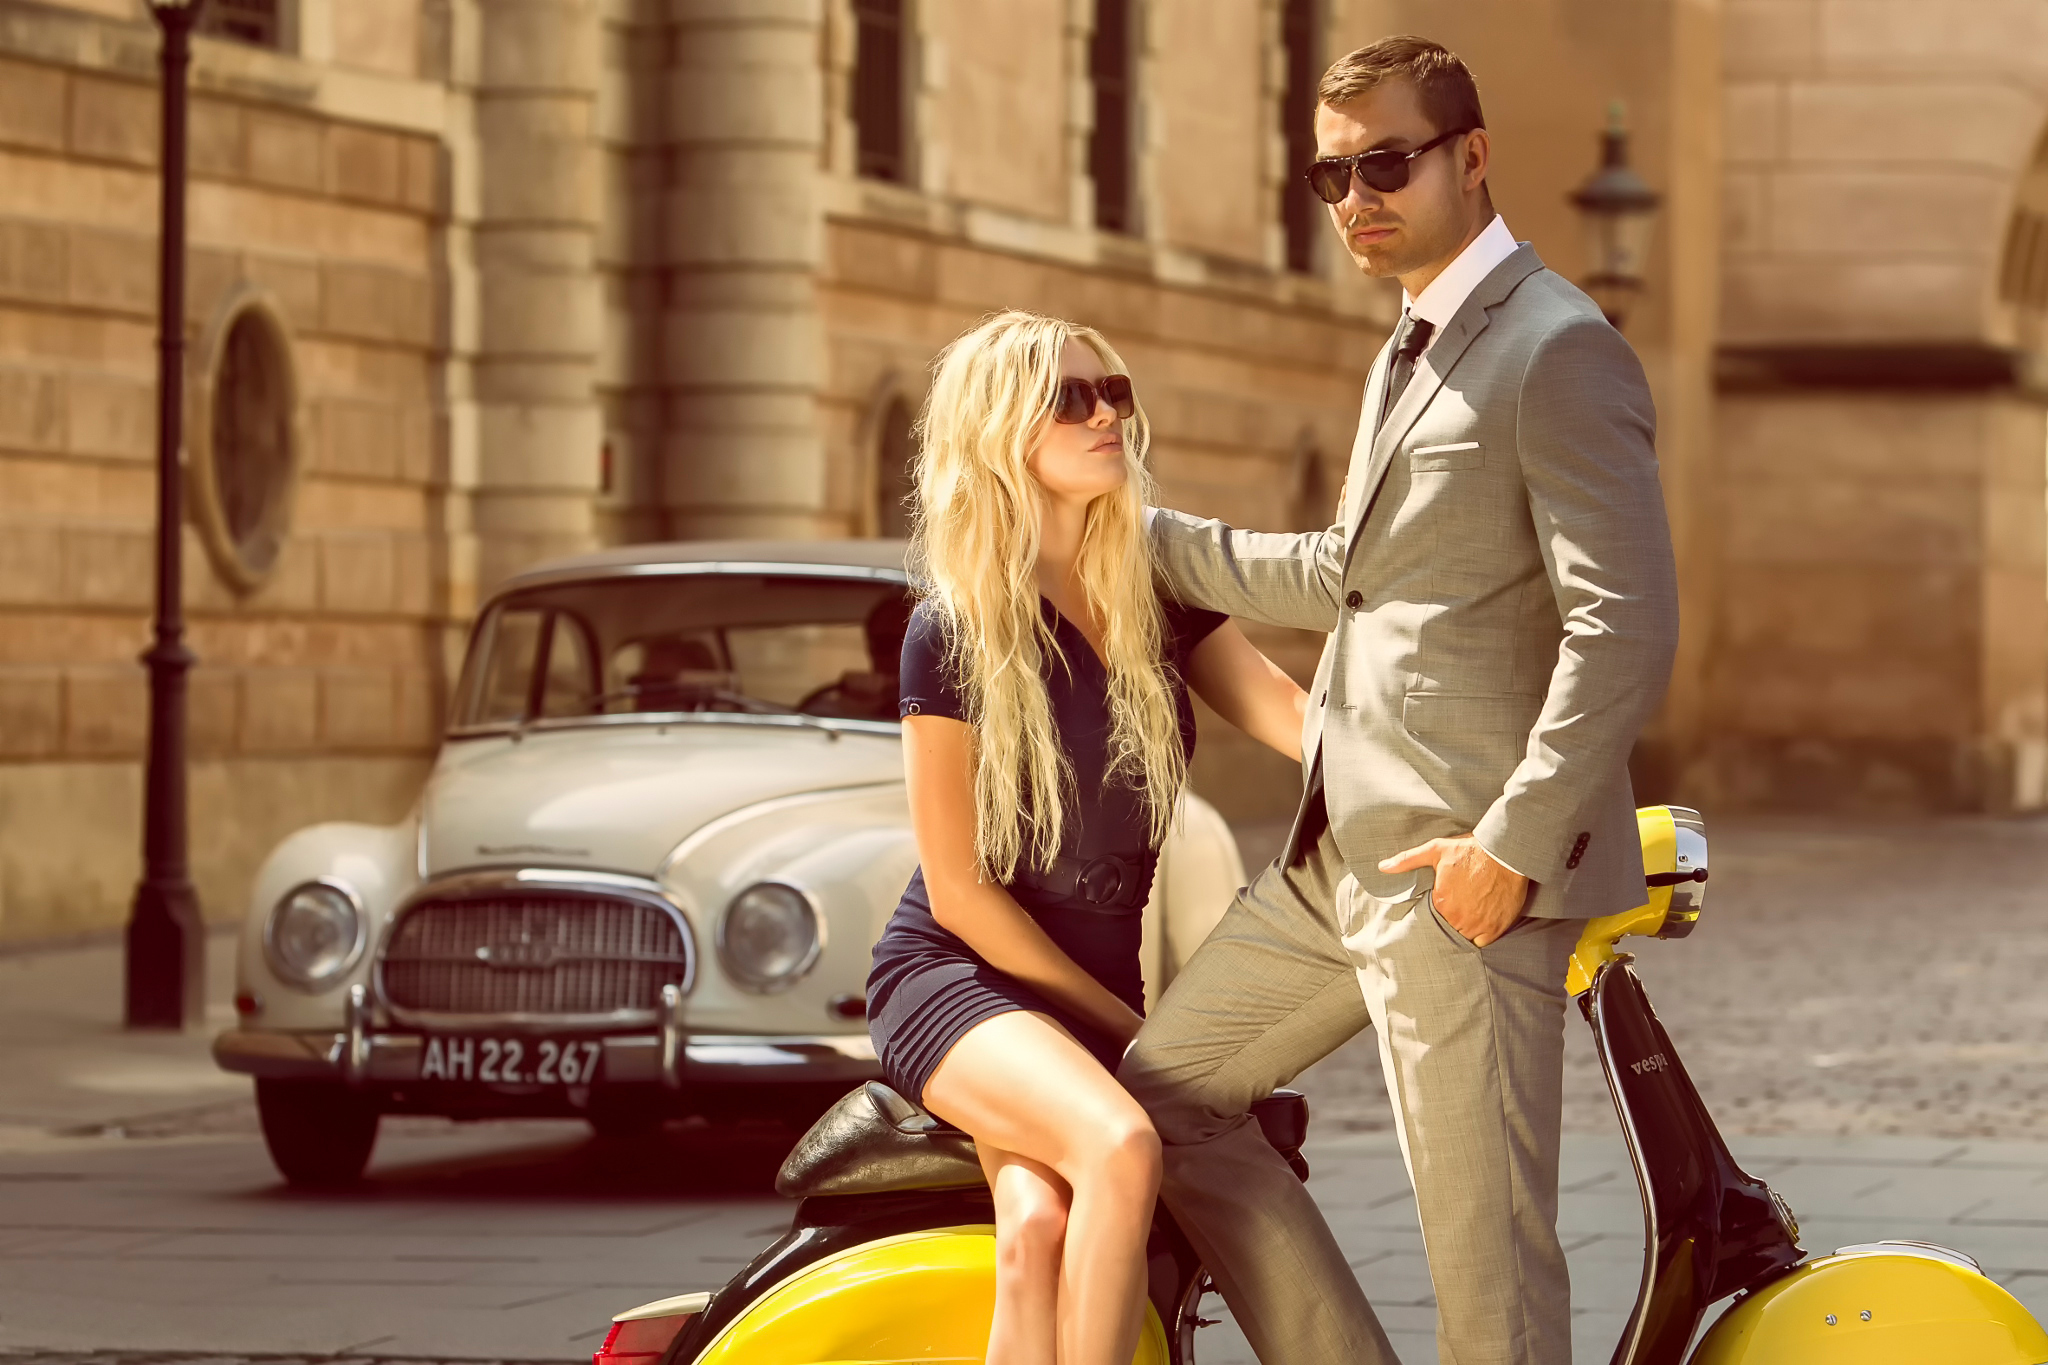 vespa vintage boy girl street a car wallpapers photos pictures 2048x1365